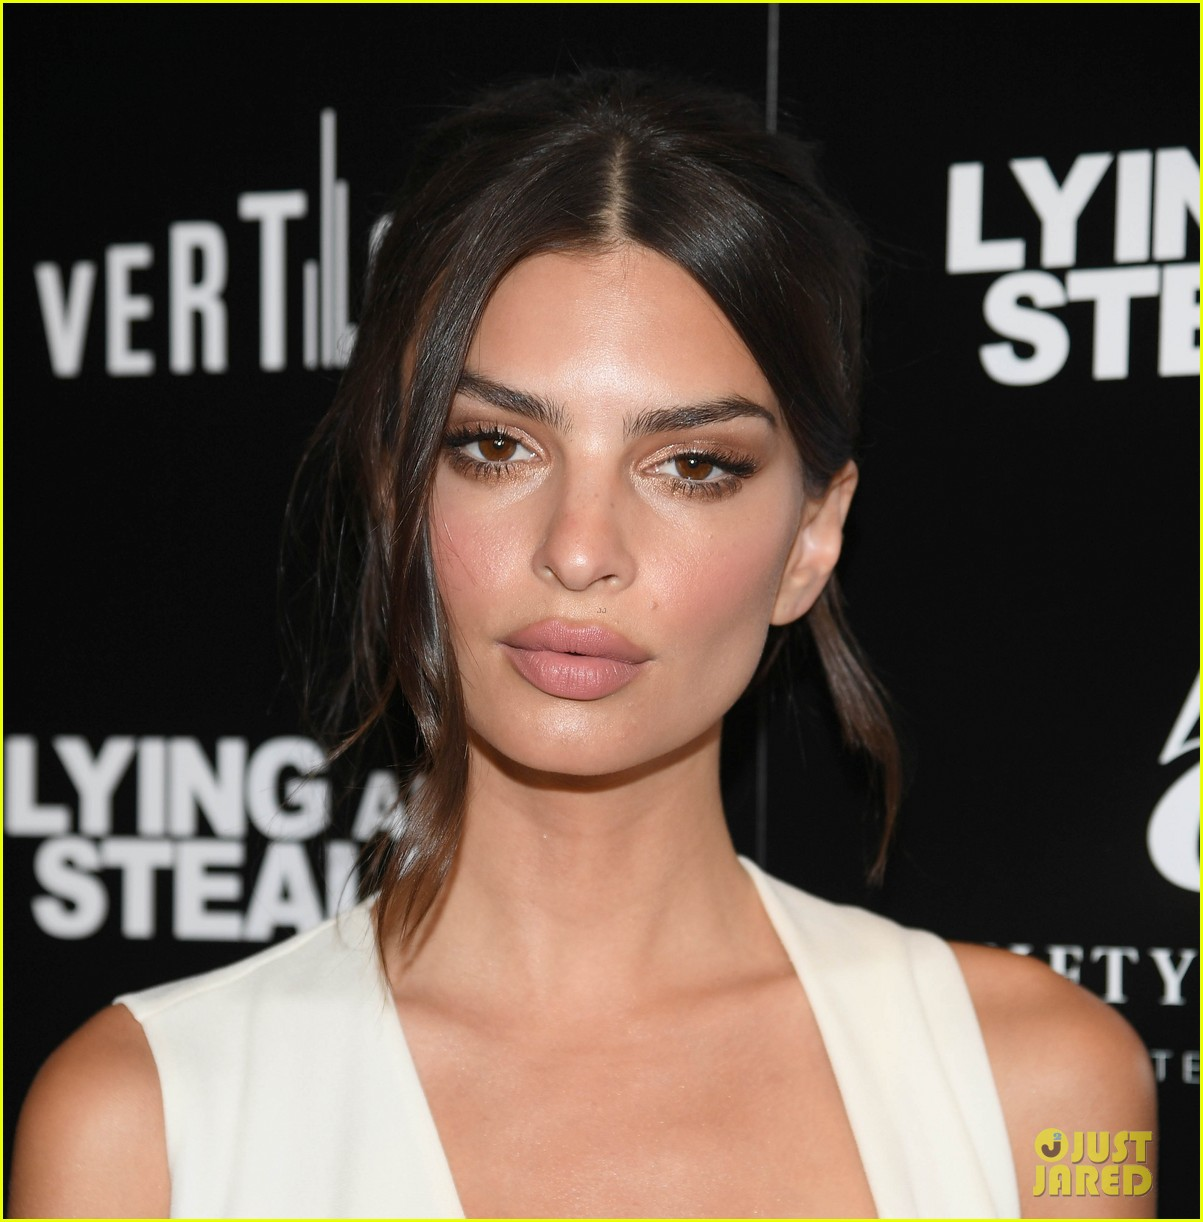 emily ratajkowski wows in white dress at lying and stealing screening in nyc 01